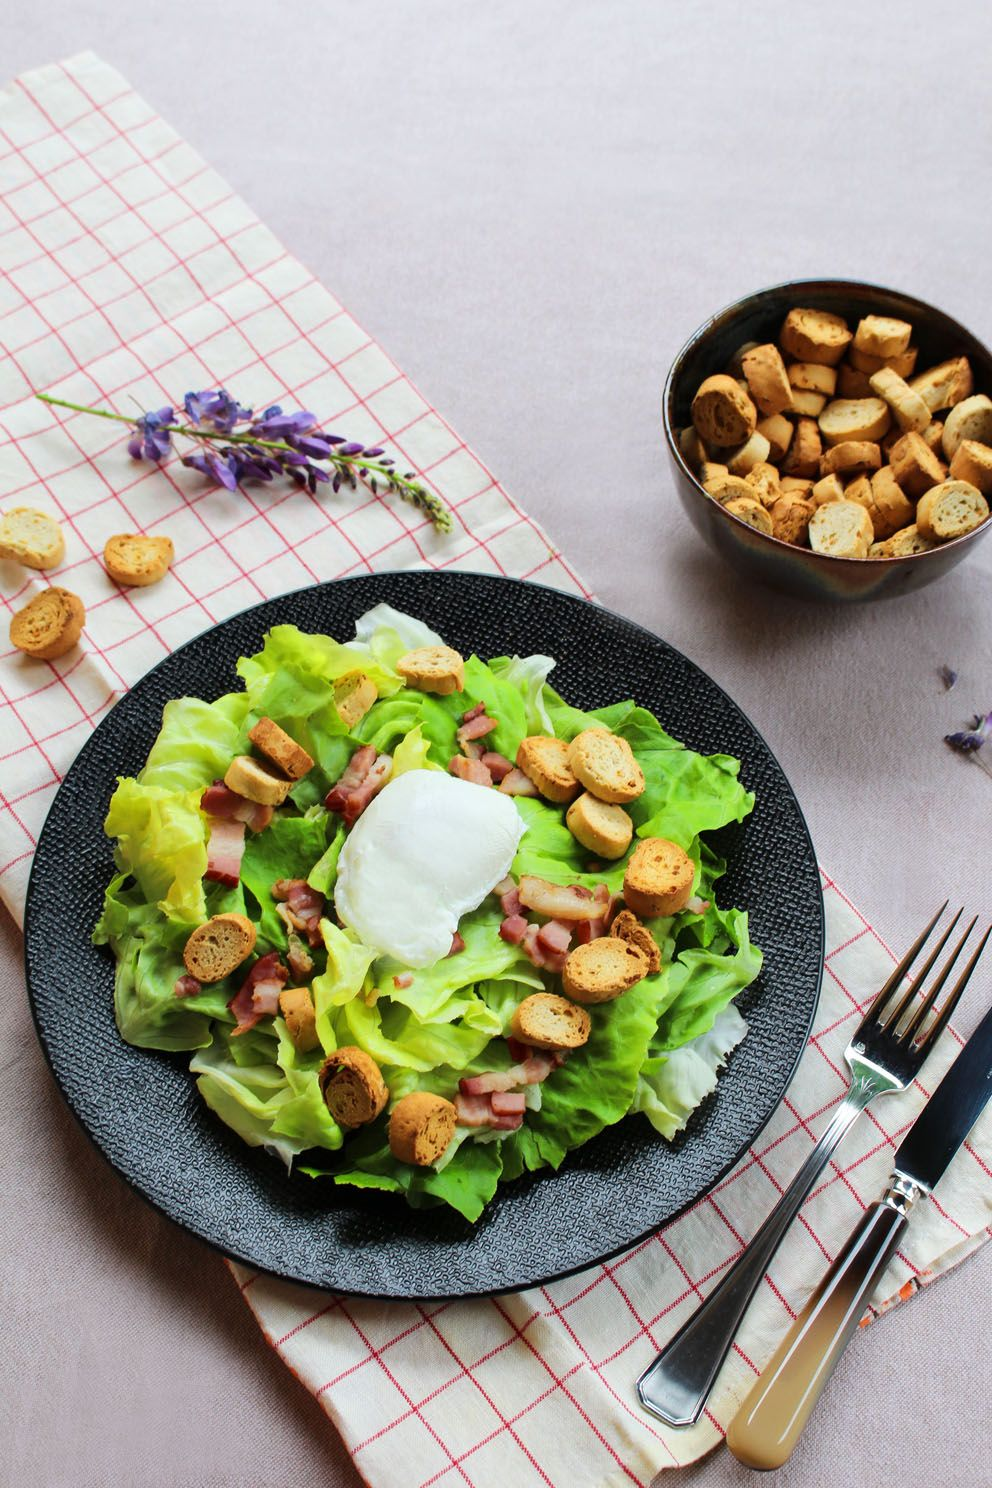 Dlicieuse salade lyonnaise recette delicious lyonnaise salad dlicieuse salade lyonnaise recette delicious lyonnaise salad recipe autumn fall recipe forumfinder Gallery